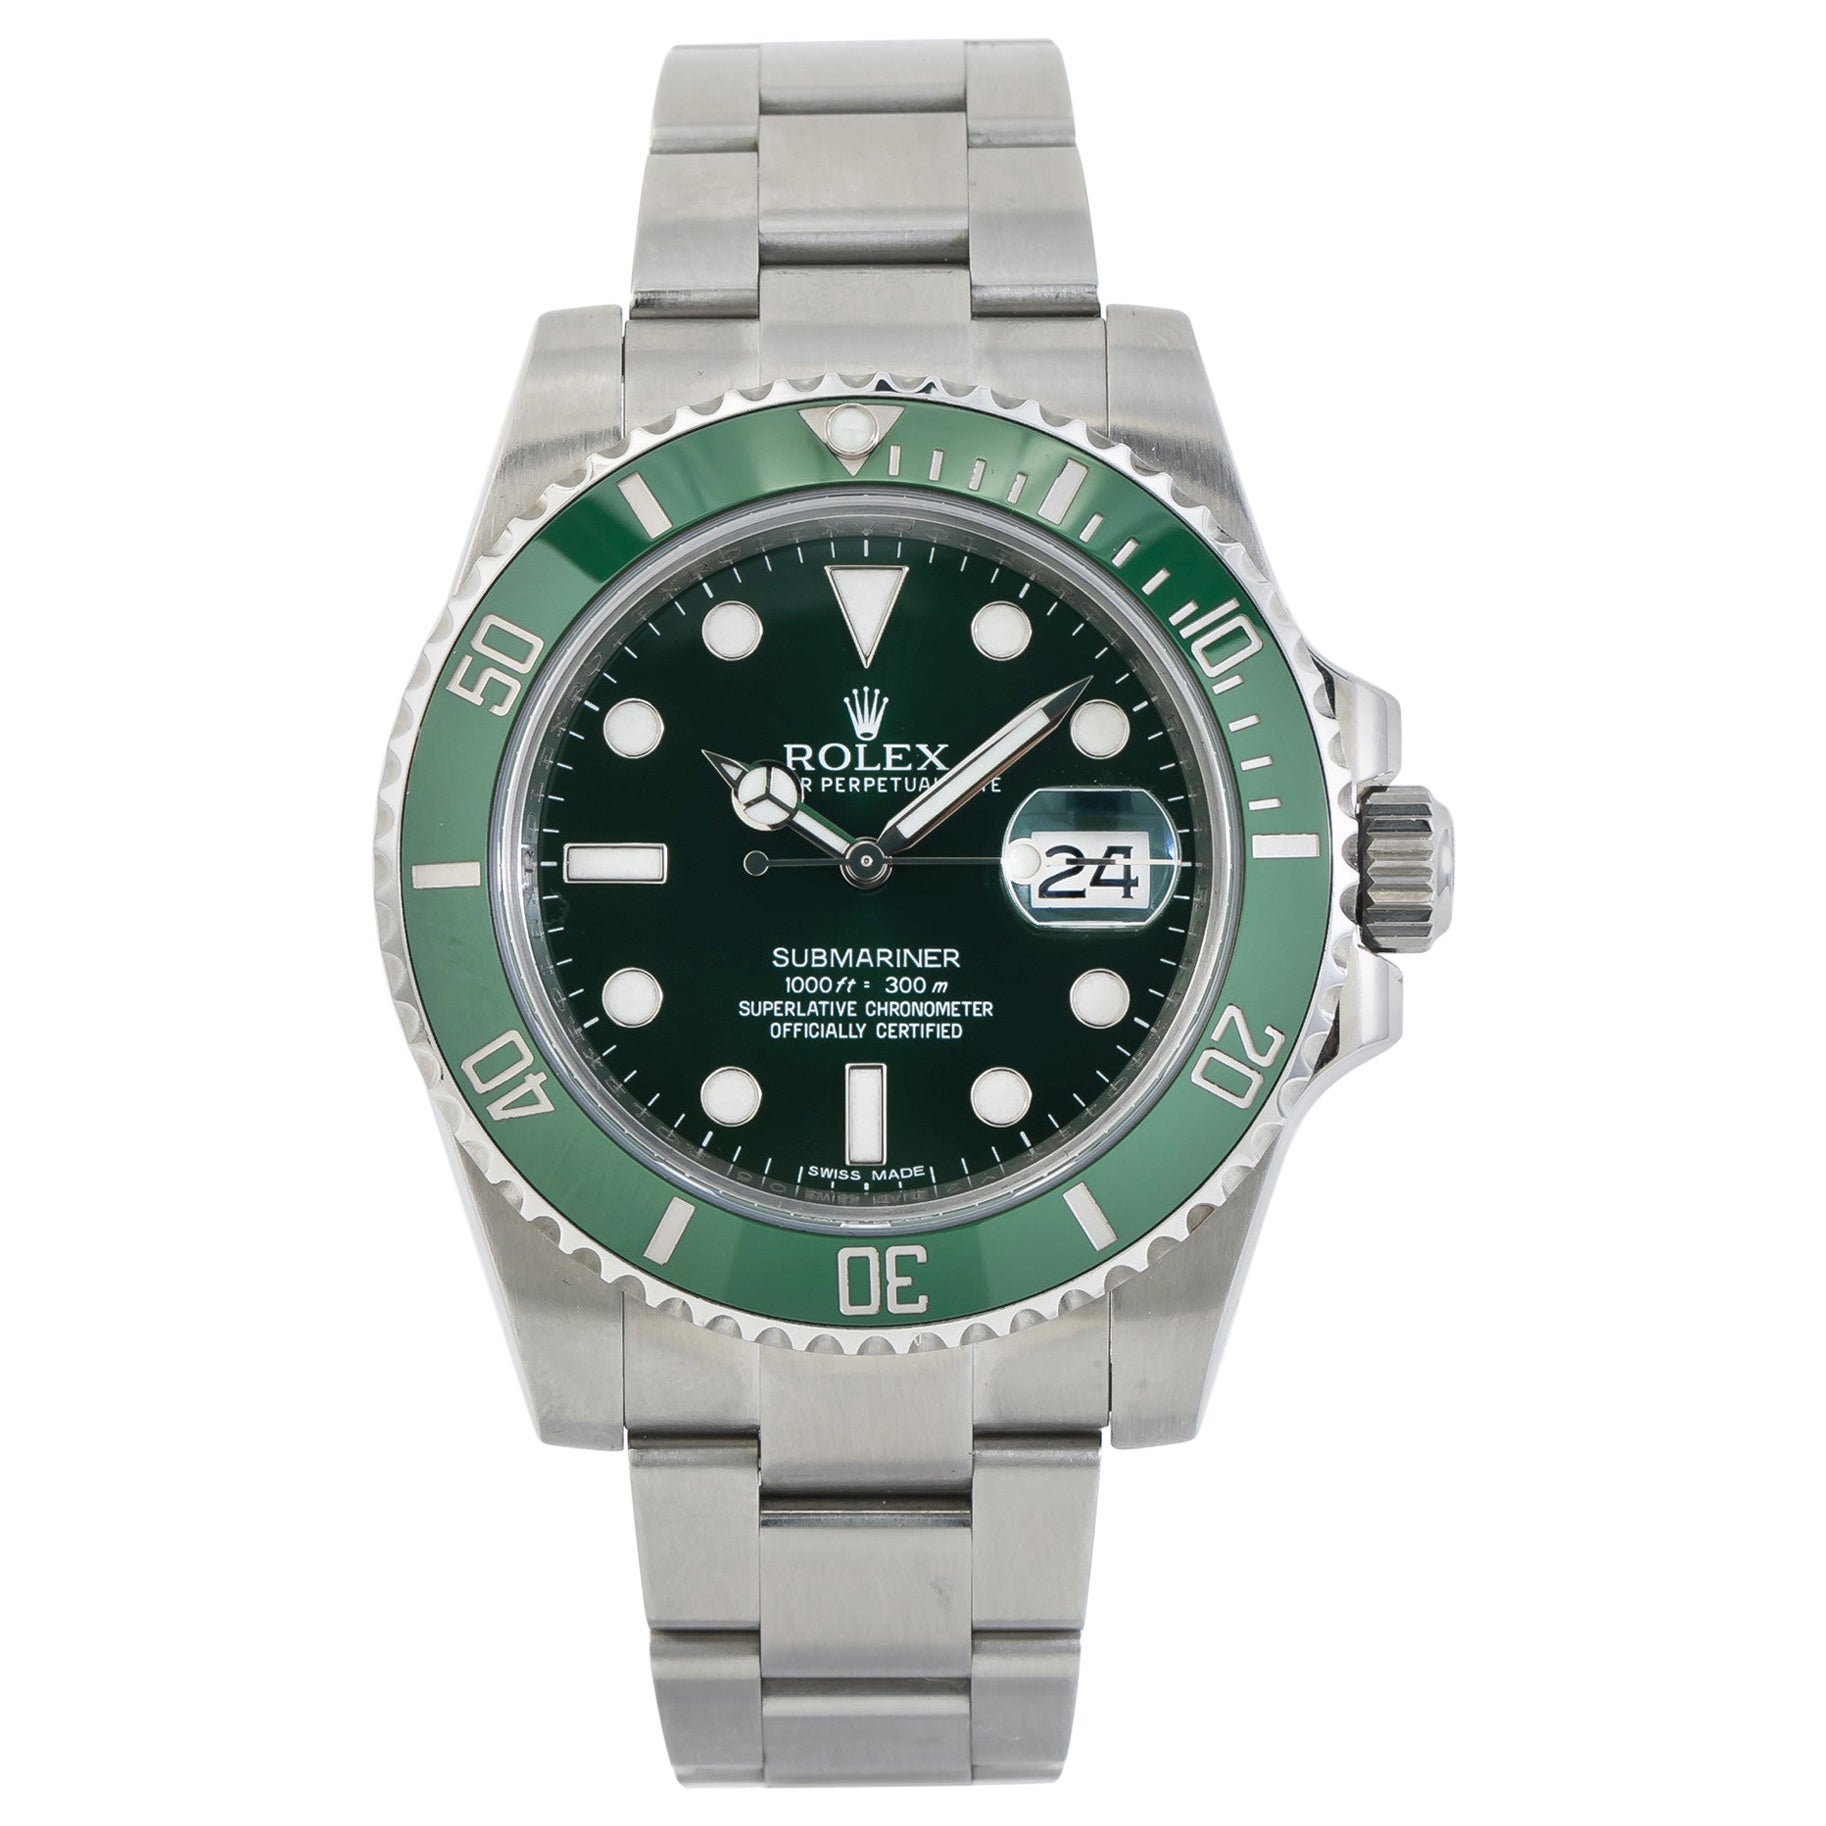 Rolex Submariner 116610LV, Green Dial, Certified and Warranty